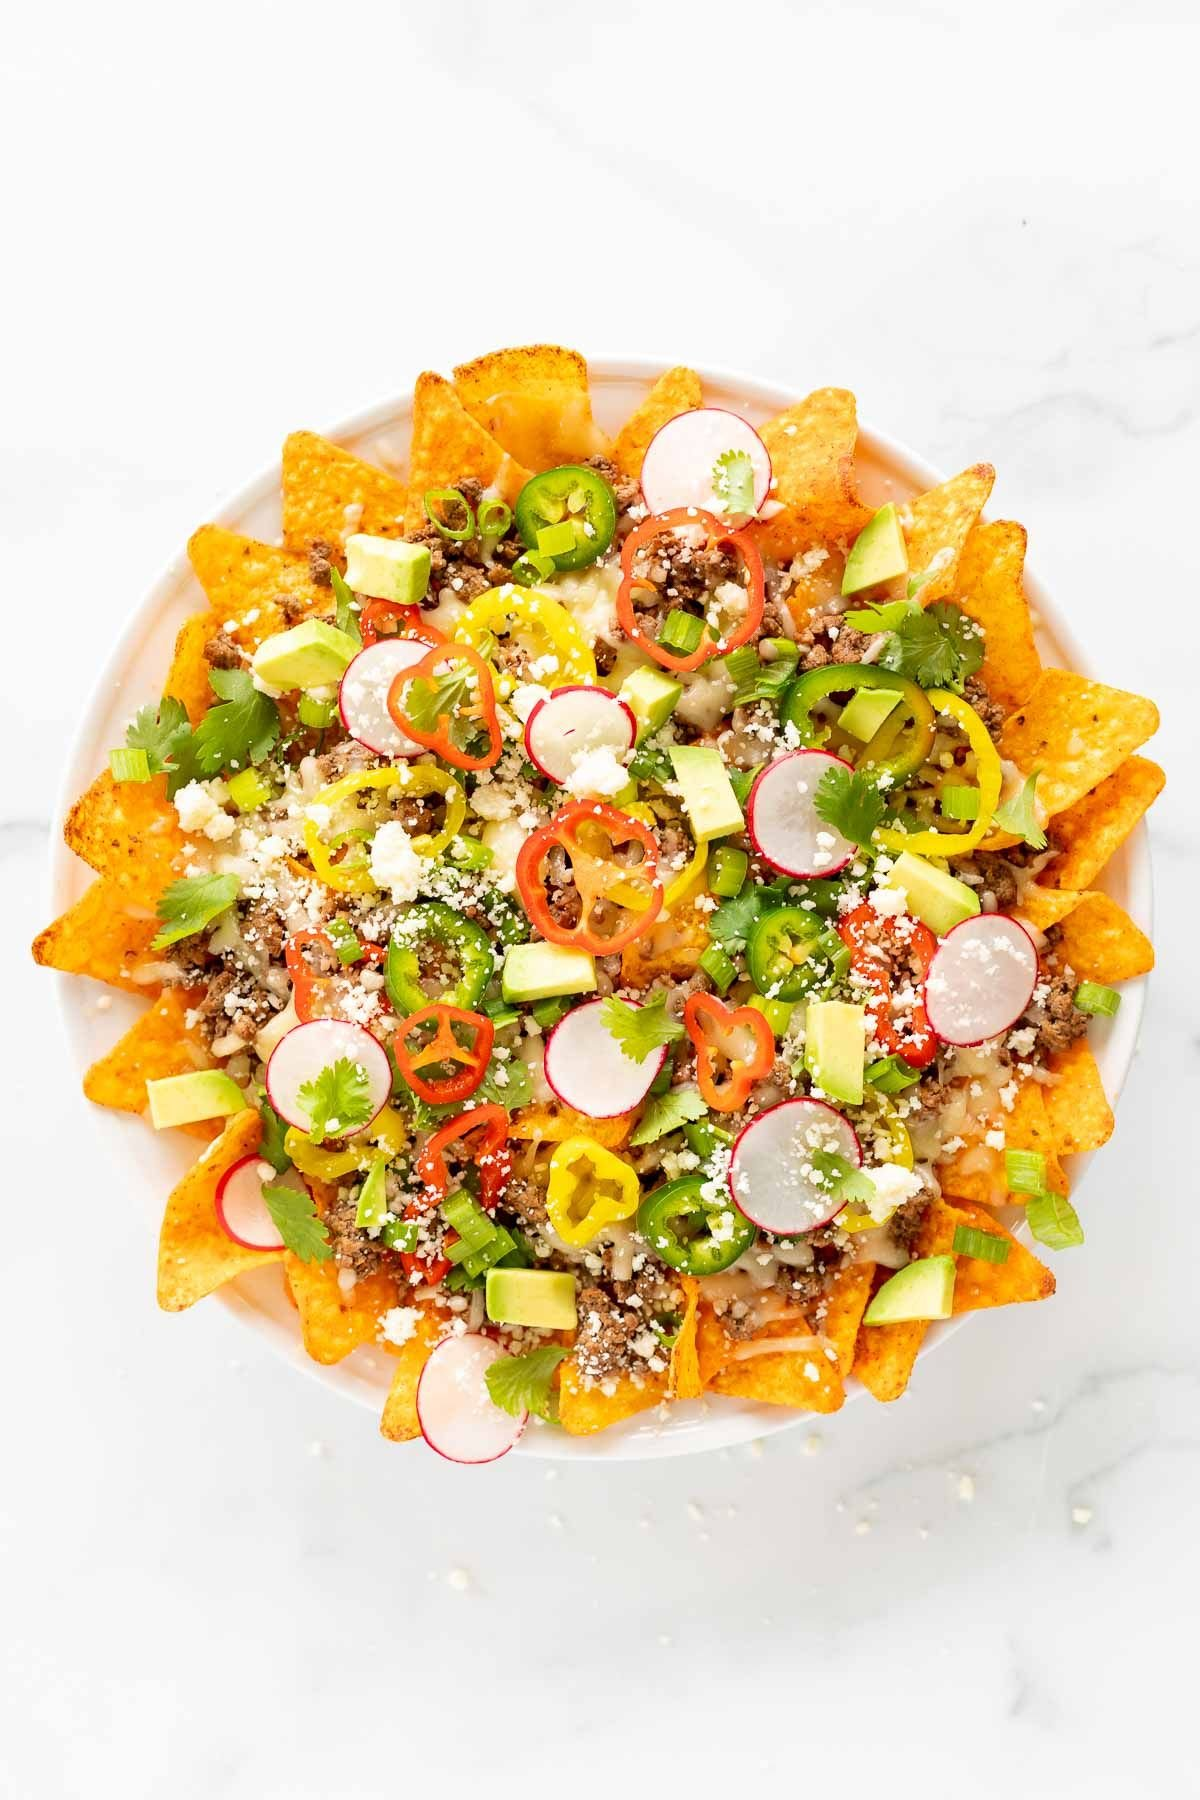 A white plate full of Doritos nachos, on a marble surface.